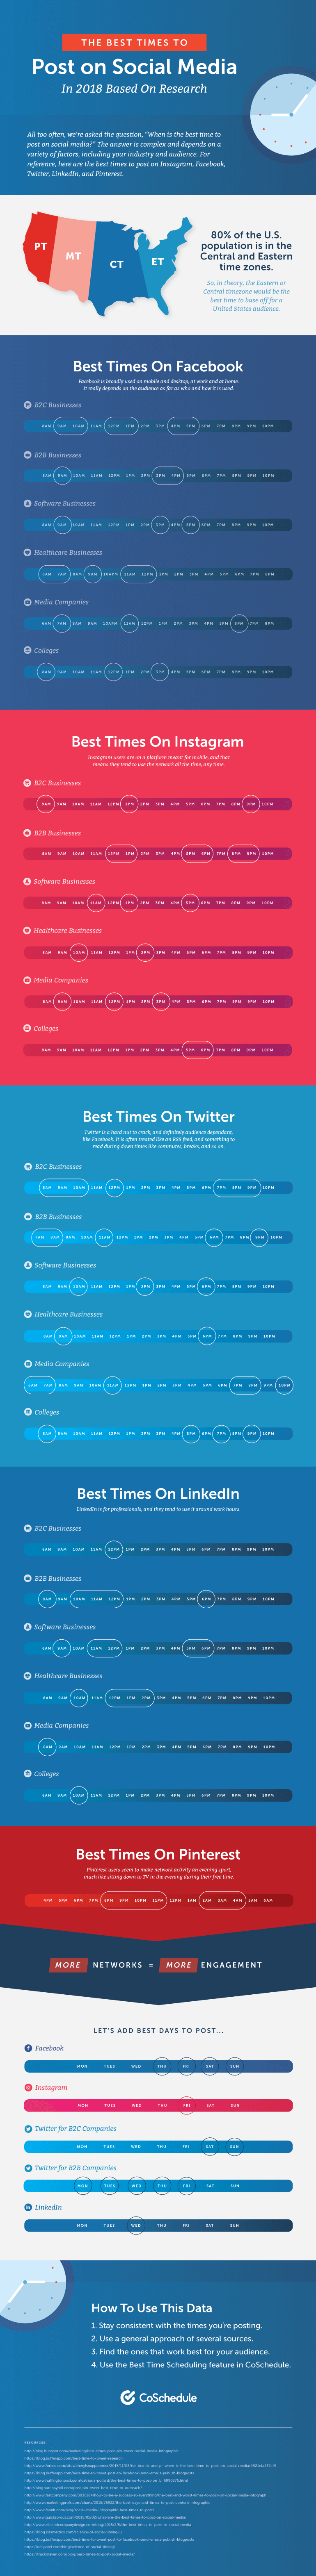 Complete Best Times to Post on Social Media Infographic